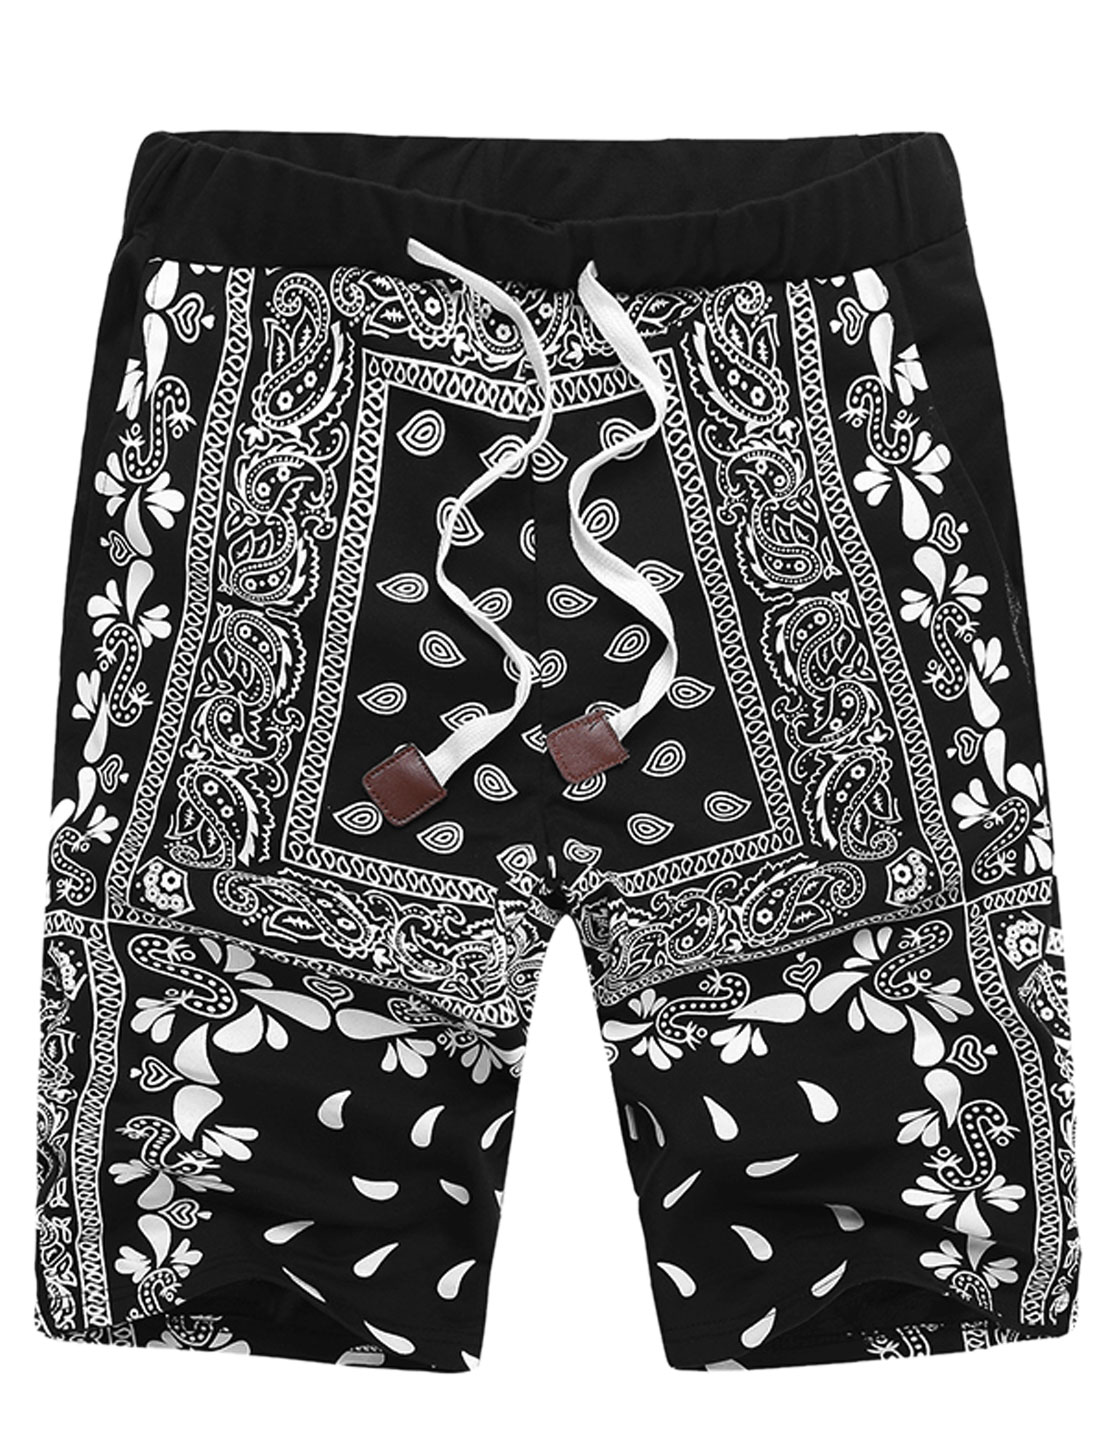 DK96 Men Chic Elastic Drawcord Waist Paisleys Shorts Black 3XL/M(W32)